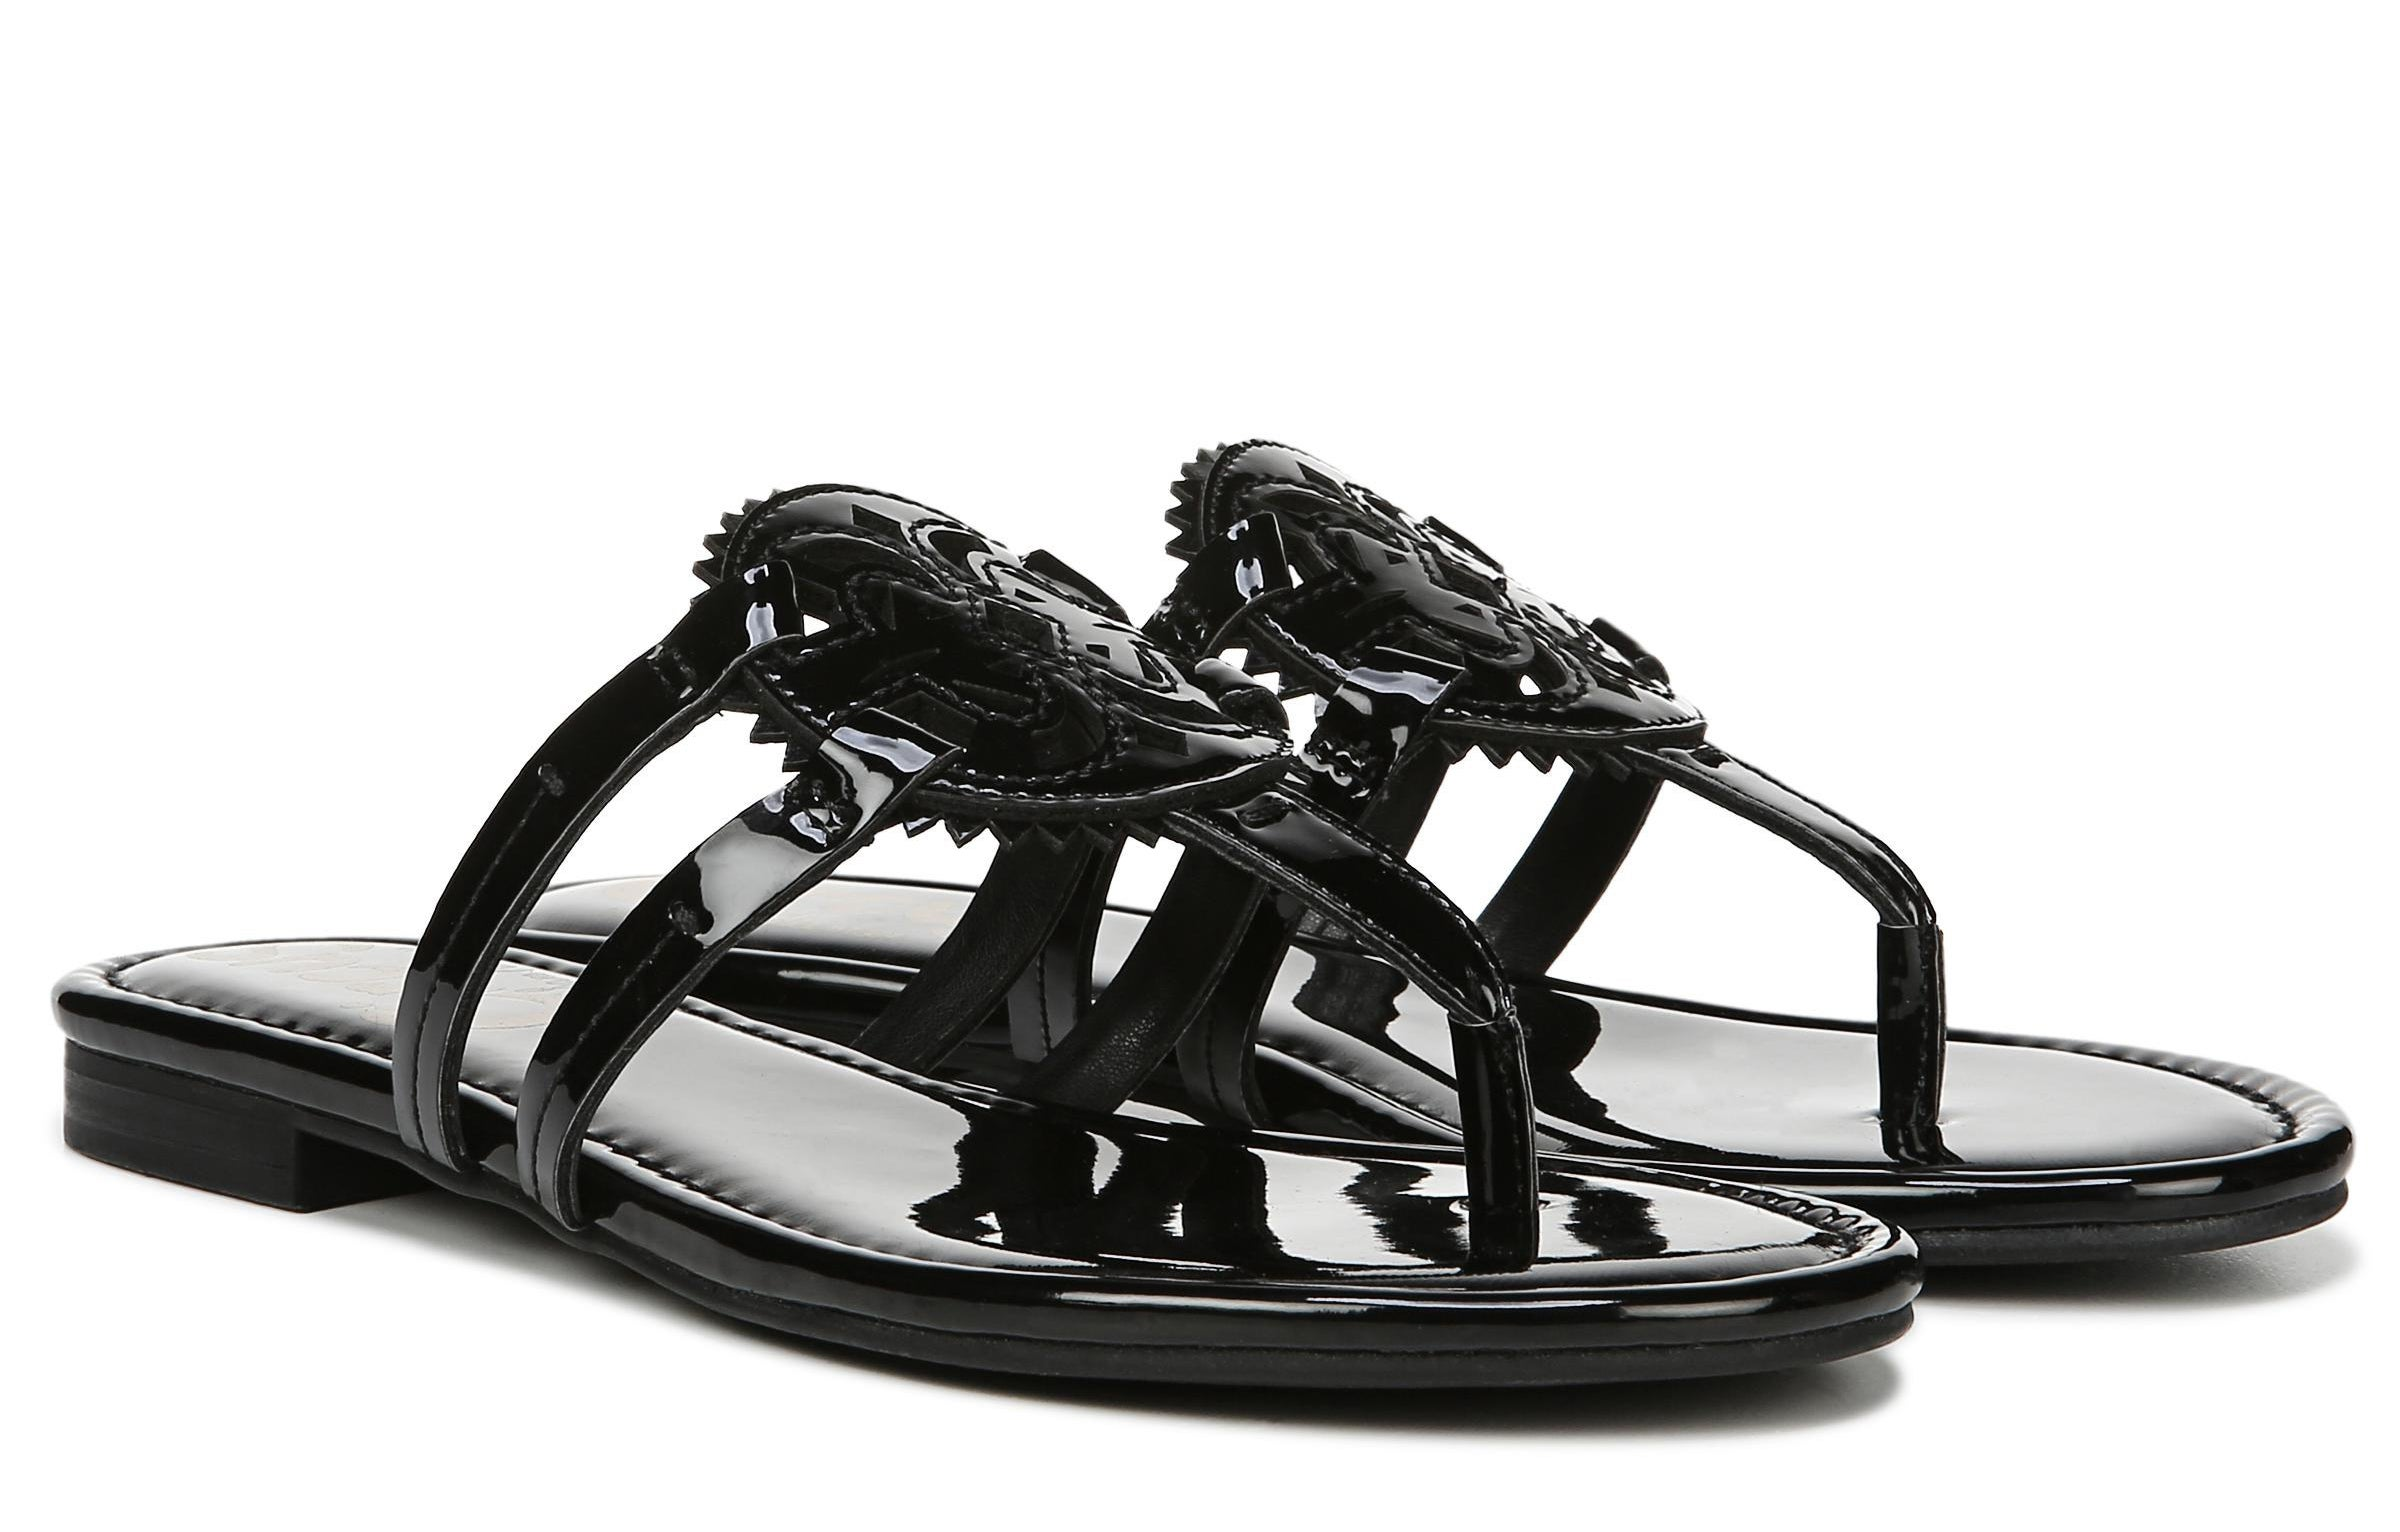 A pair of shiny black sandals